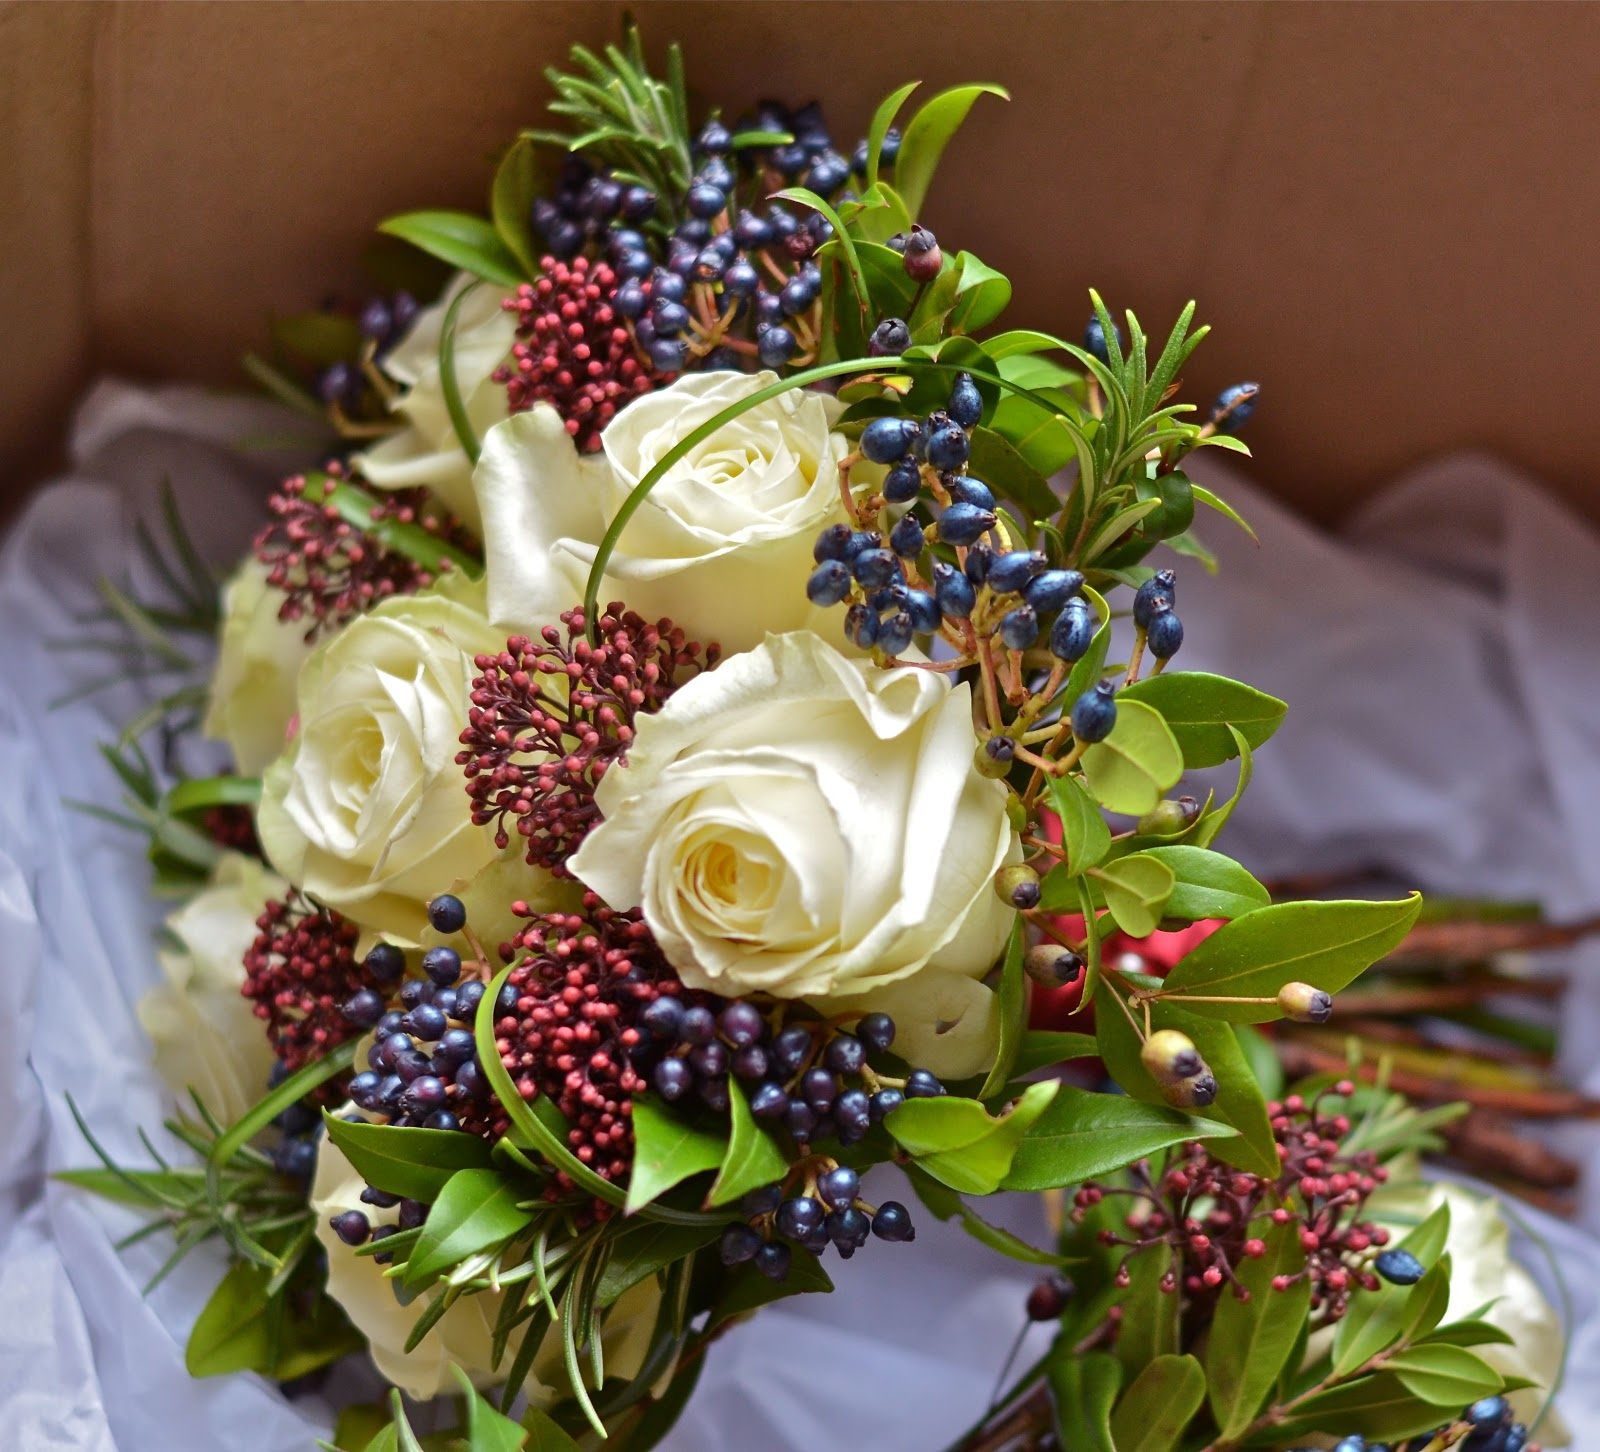 Best Flowers For Winter Wedding: Wedding Flowers Blog: Nikki's Winter Wedding Flowers